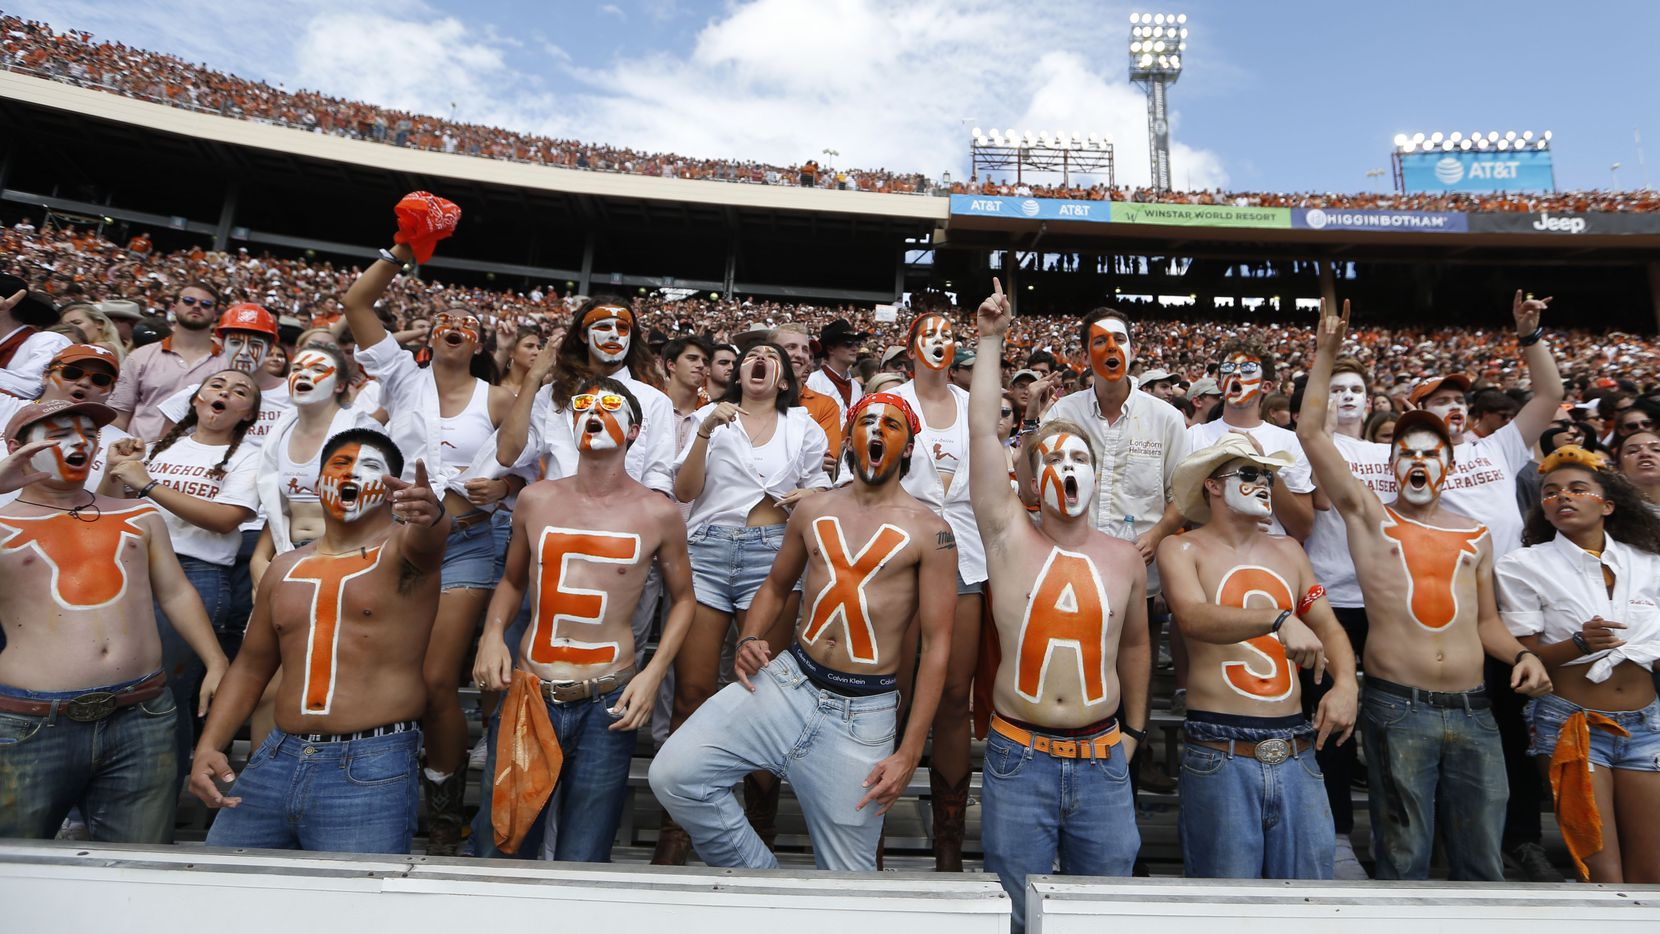 Texas Longhorns fans cheer for their team during the second half of play at the Cotton Bowl in Dallas on Saturday, October 6, 2018. Texas Longhorns defeated Oklahoma Sooners 48-45.